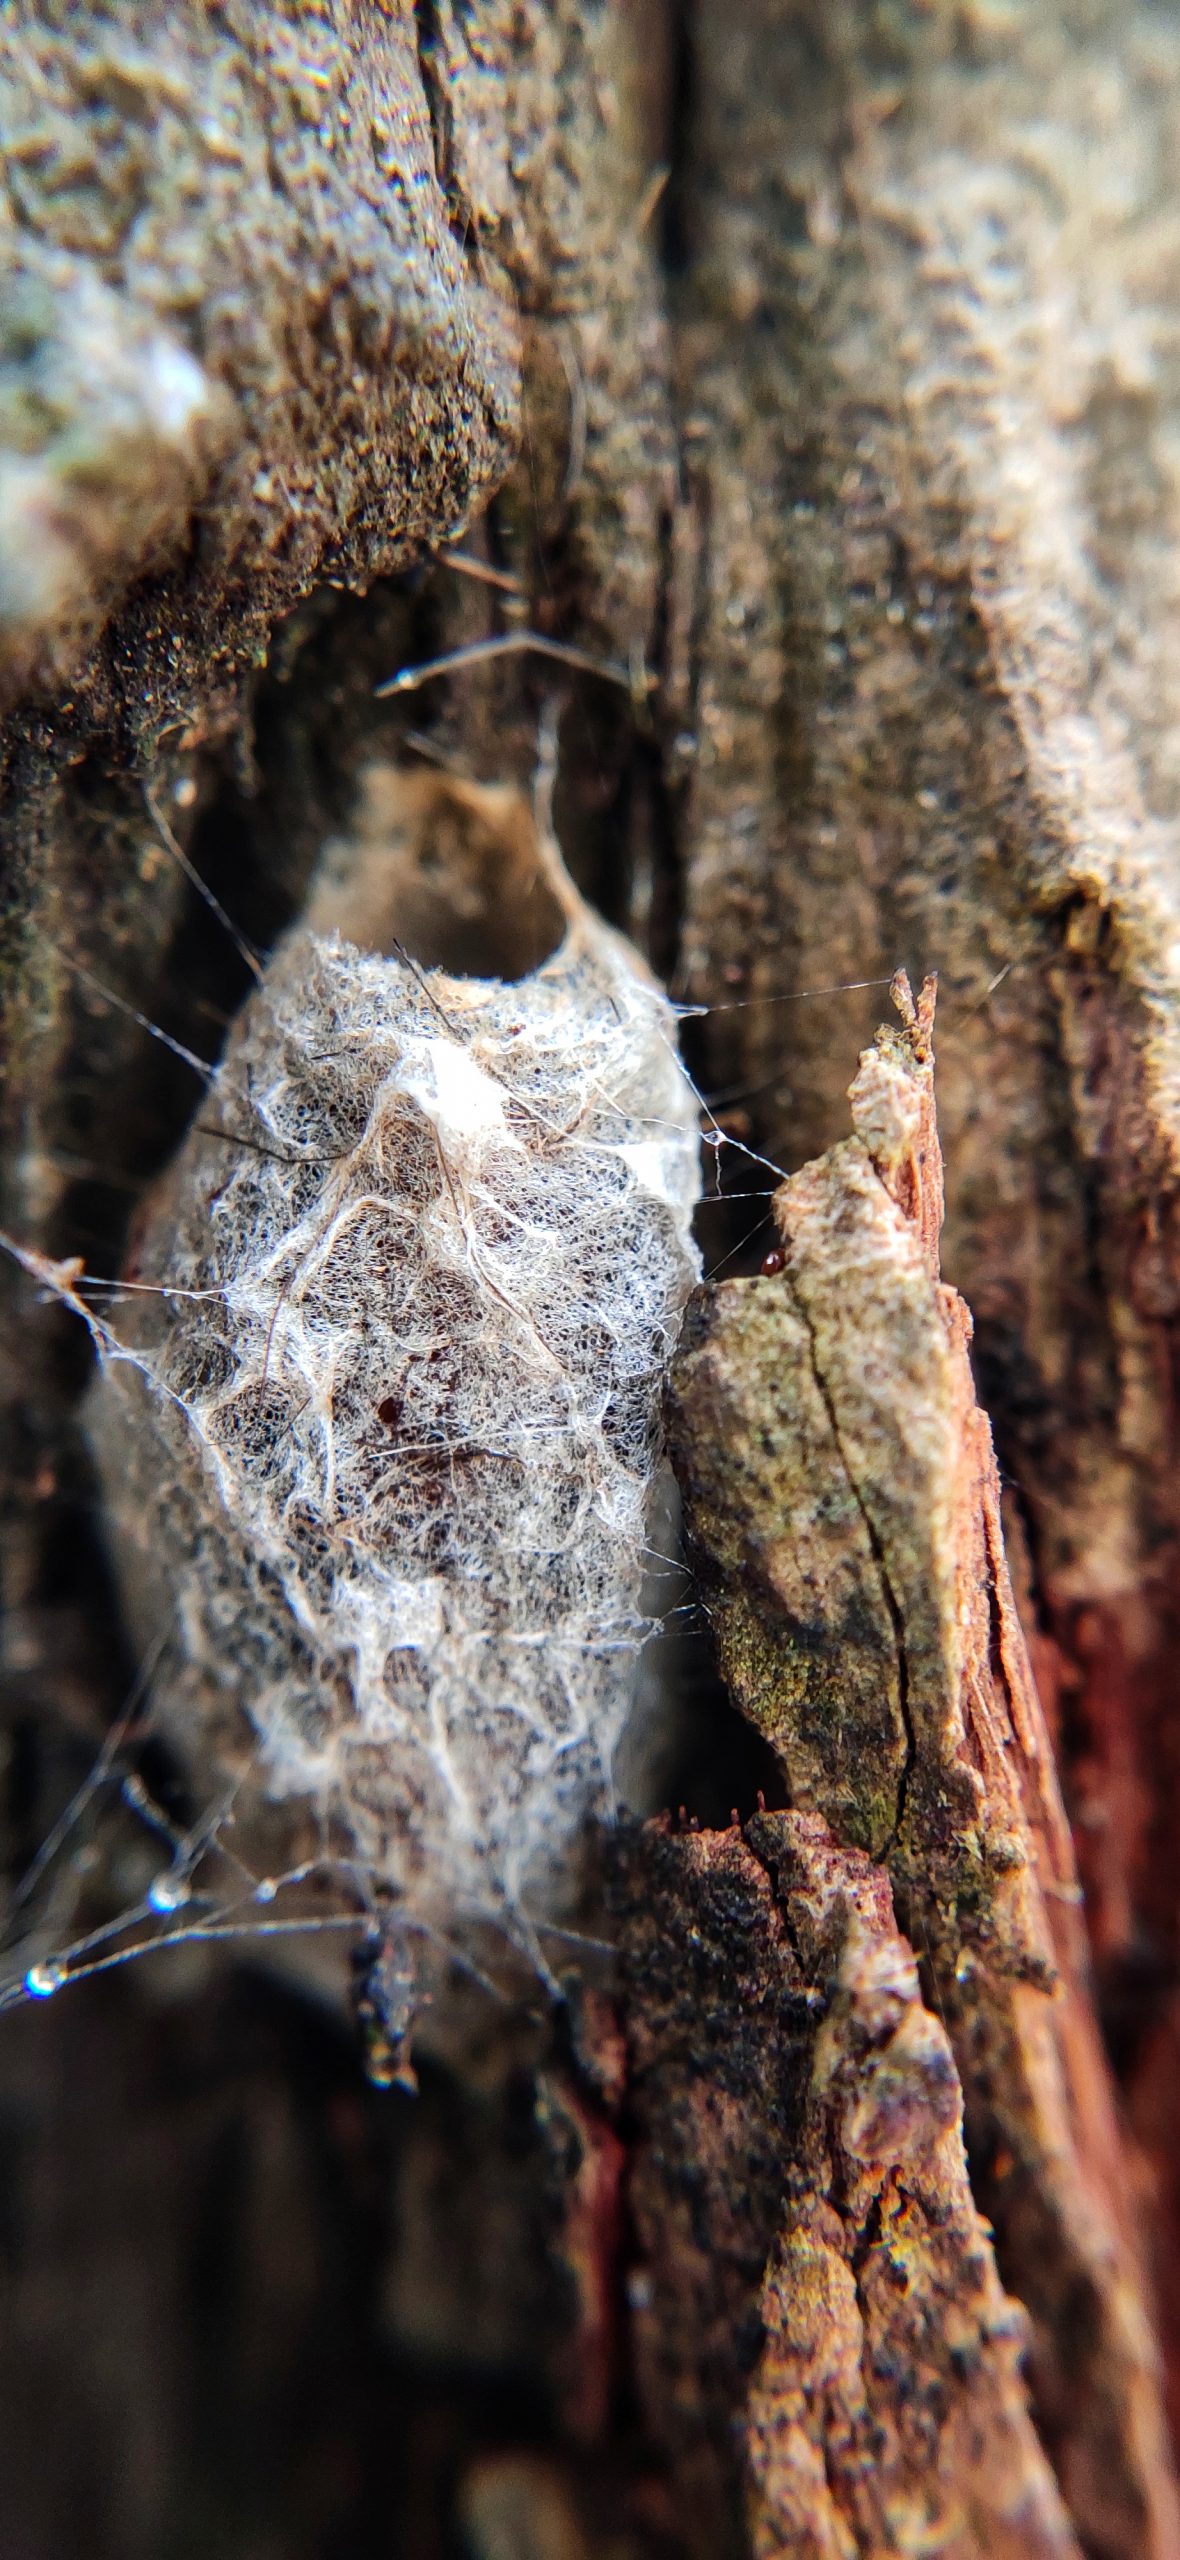 Nest of an insect